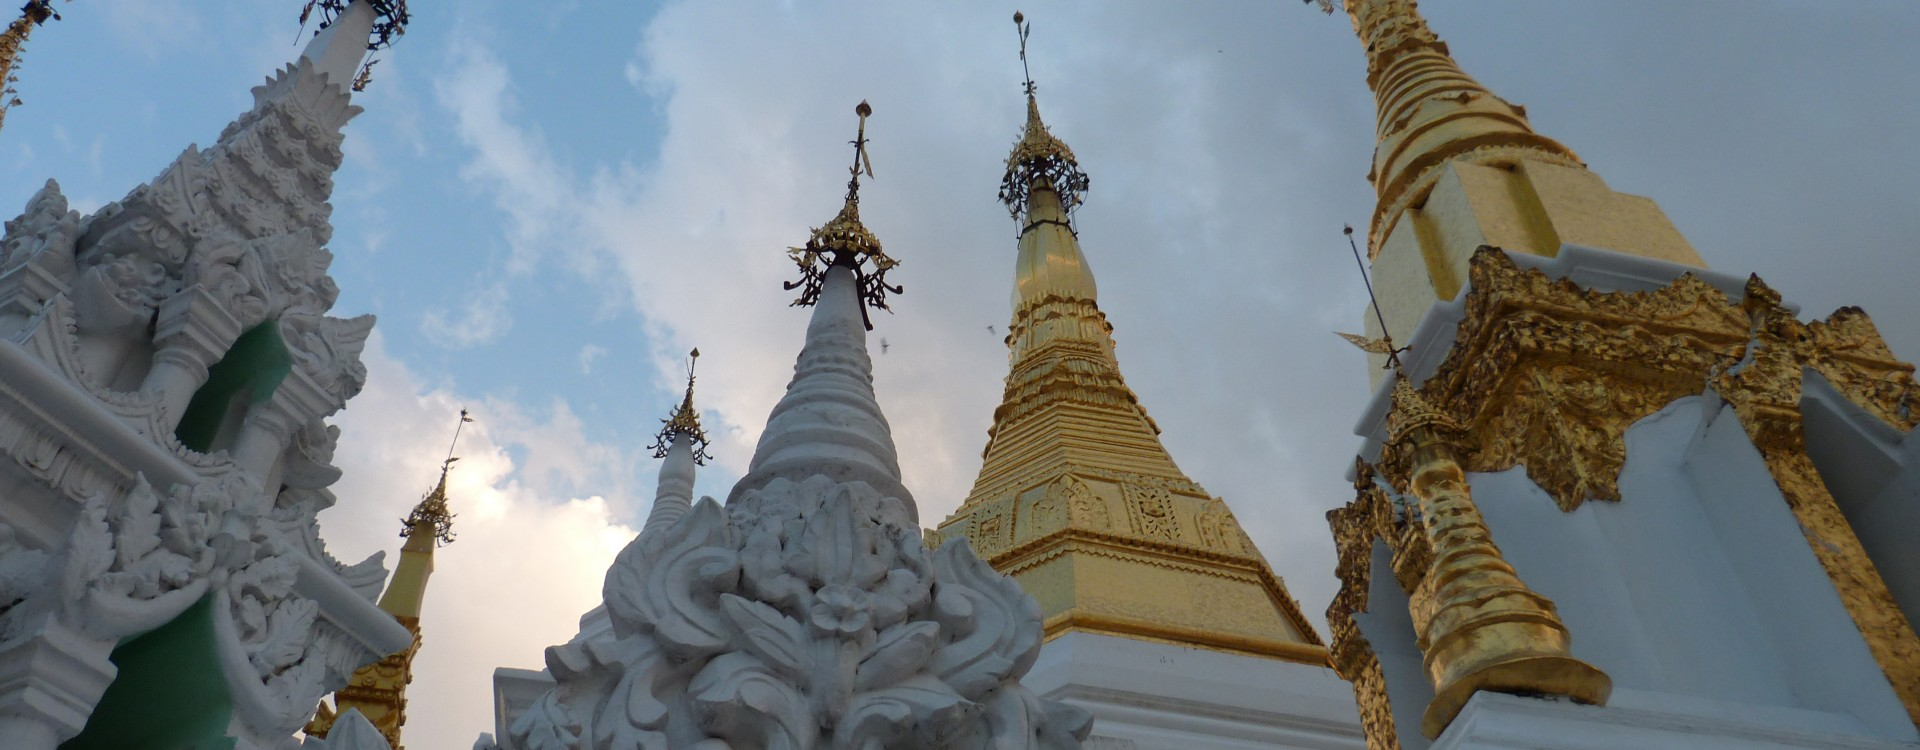 Temples of the Shwedagon Pagoda